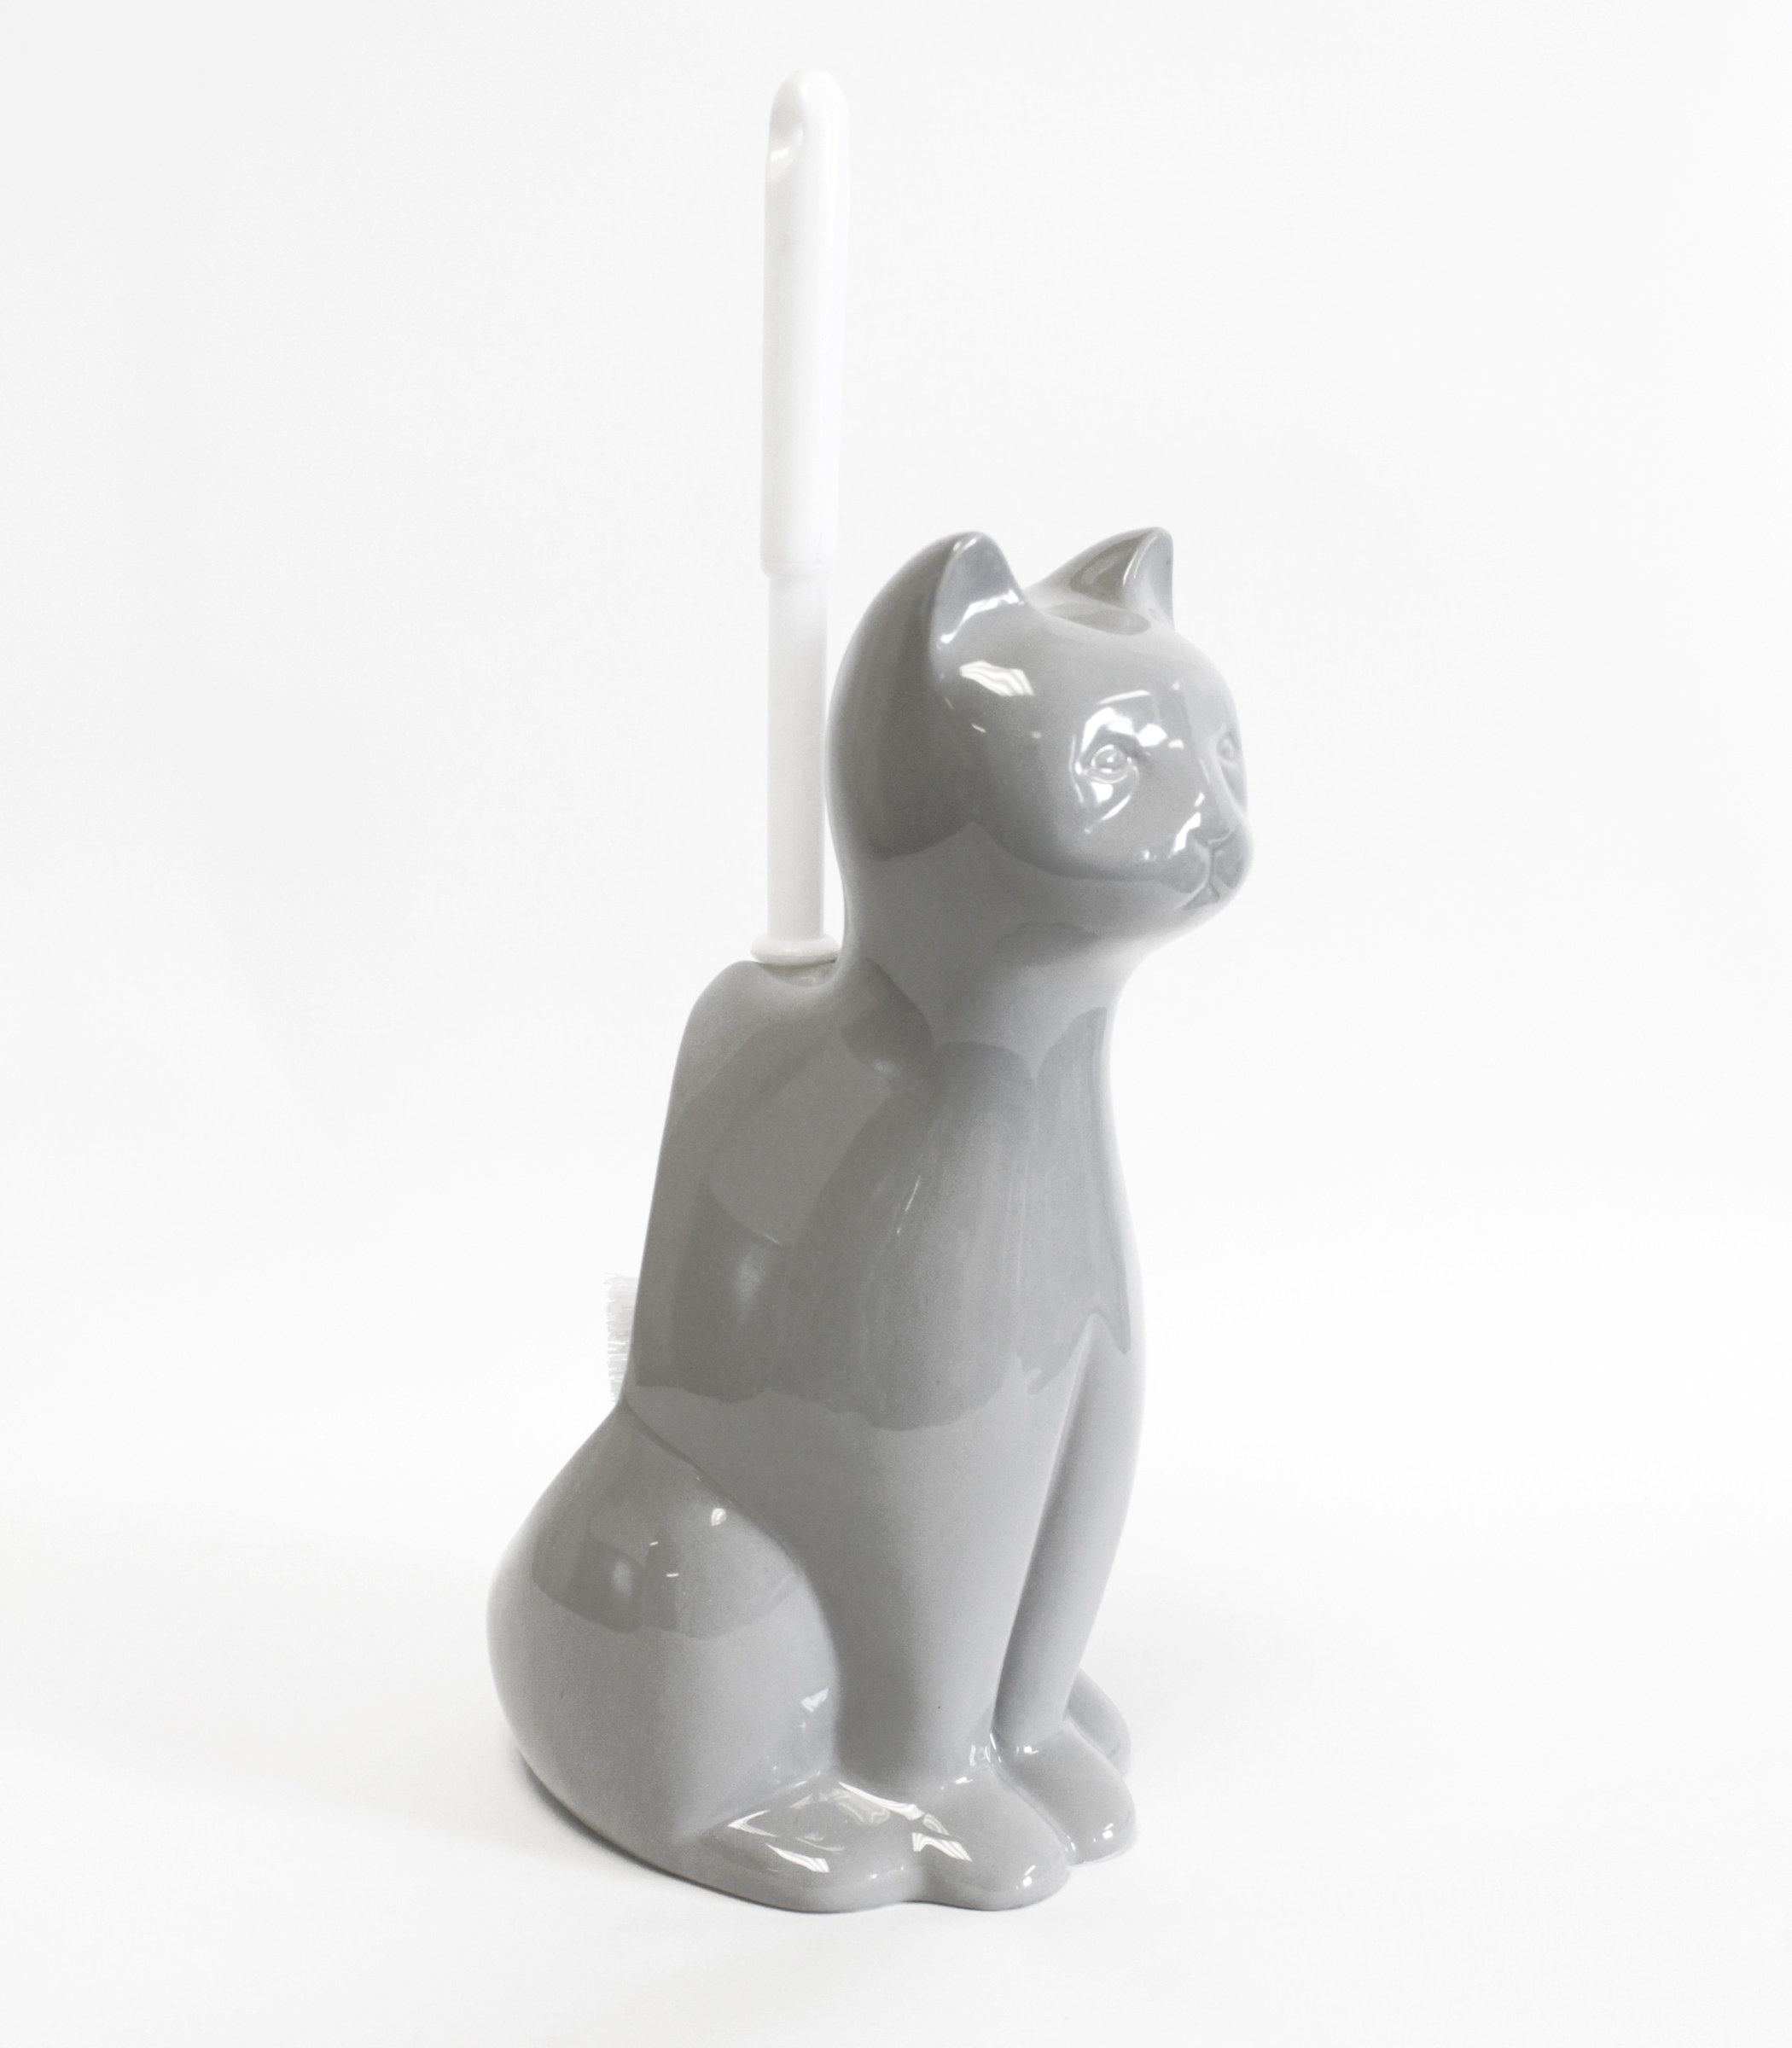 The grey porcelain cat-shaped toilet brush holder